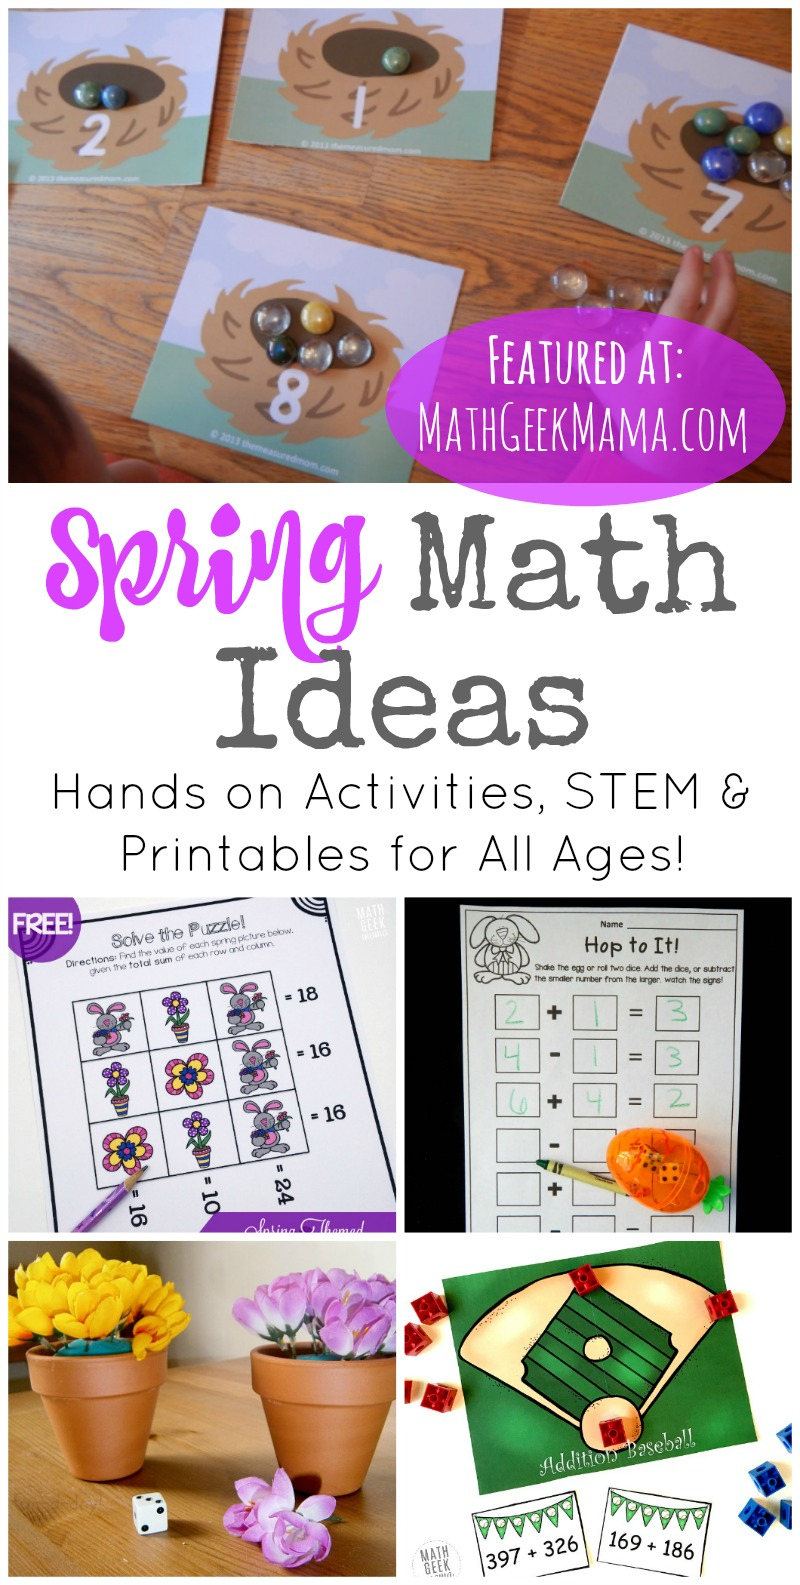 hight resolution of 50+ Spring Math Ideas for Grades K-8